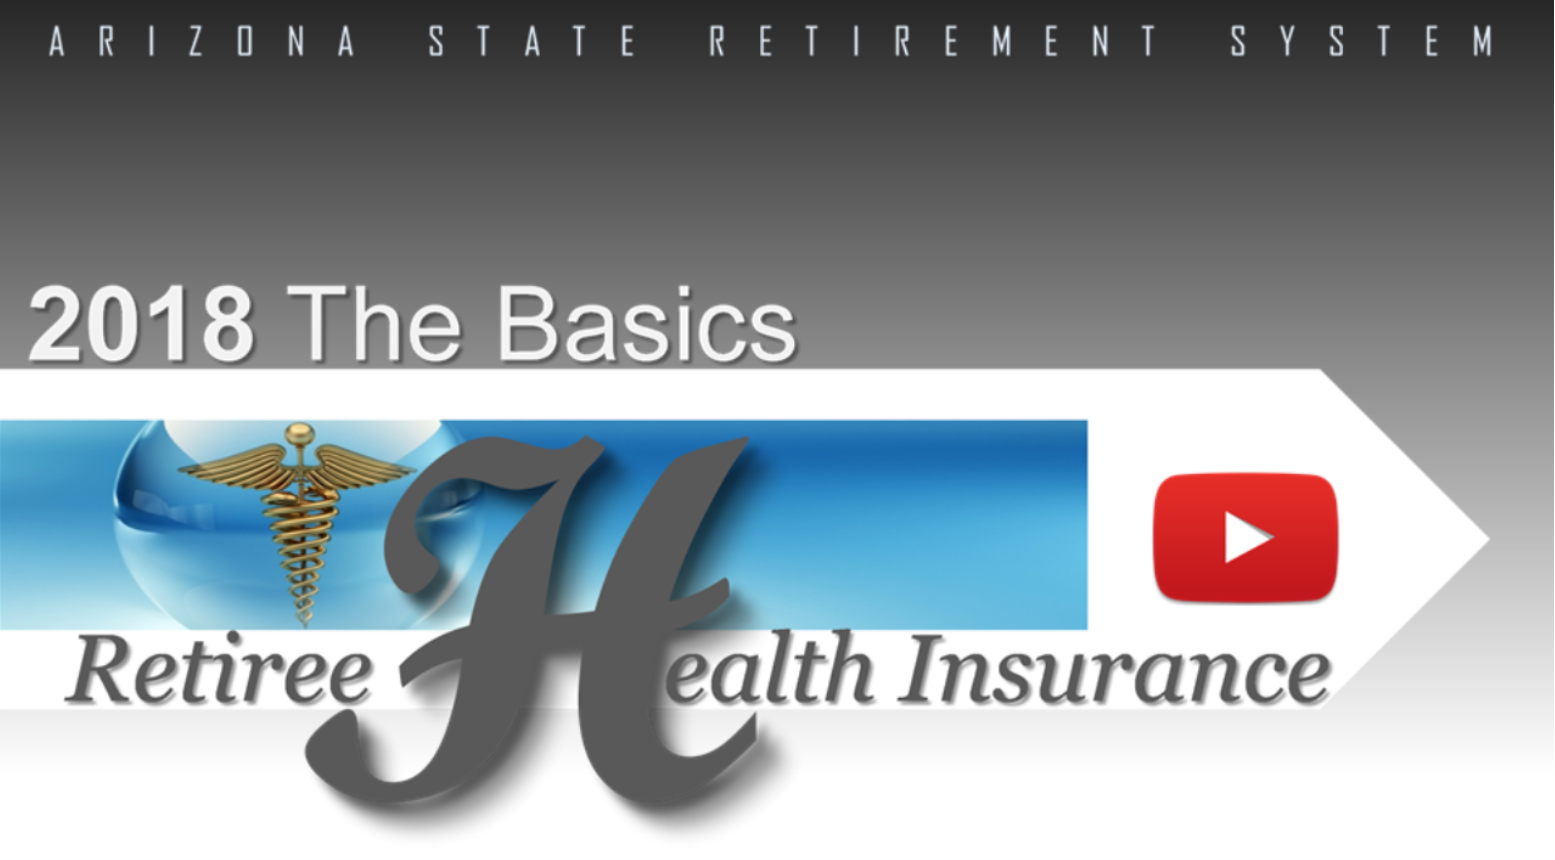 Health Insurance eLearning graphic